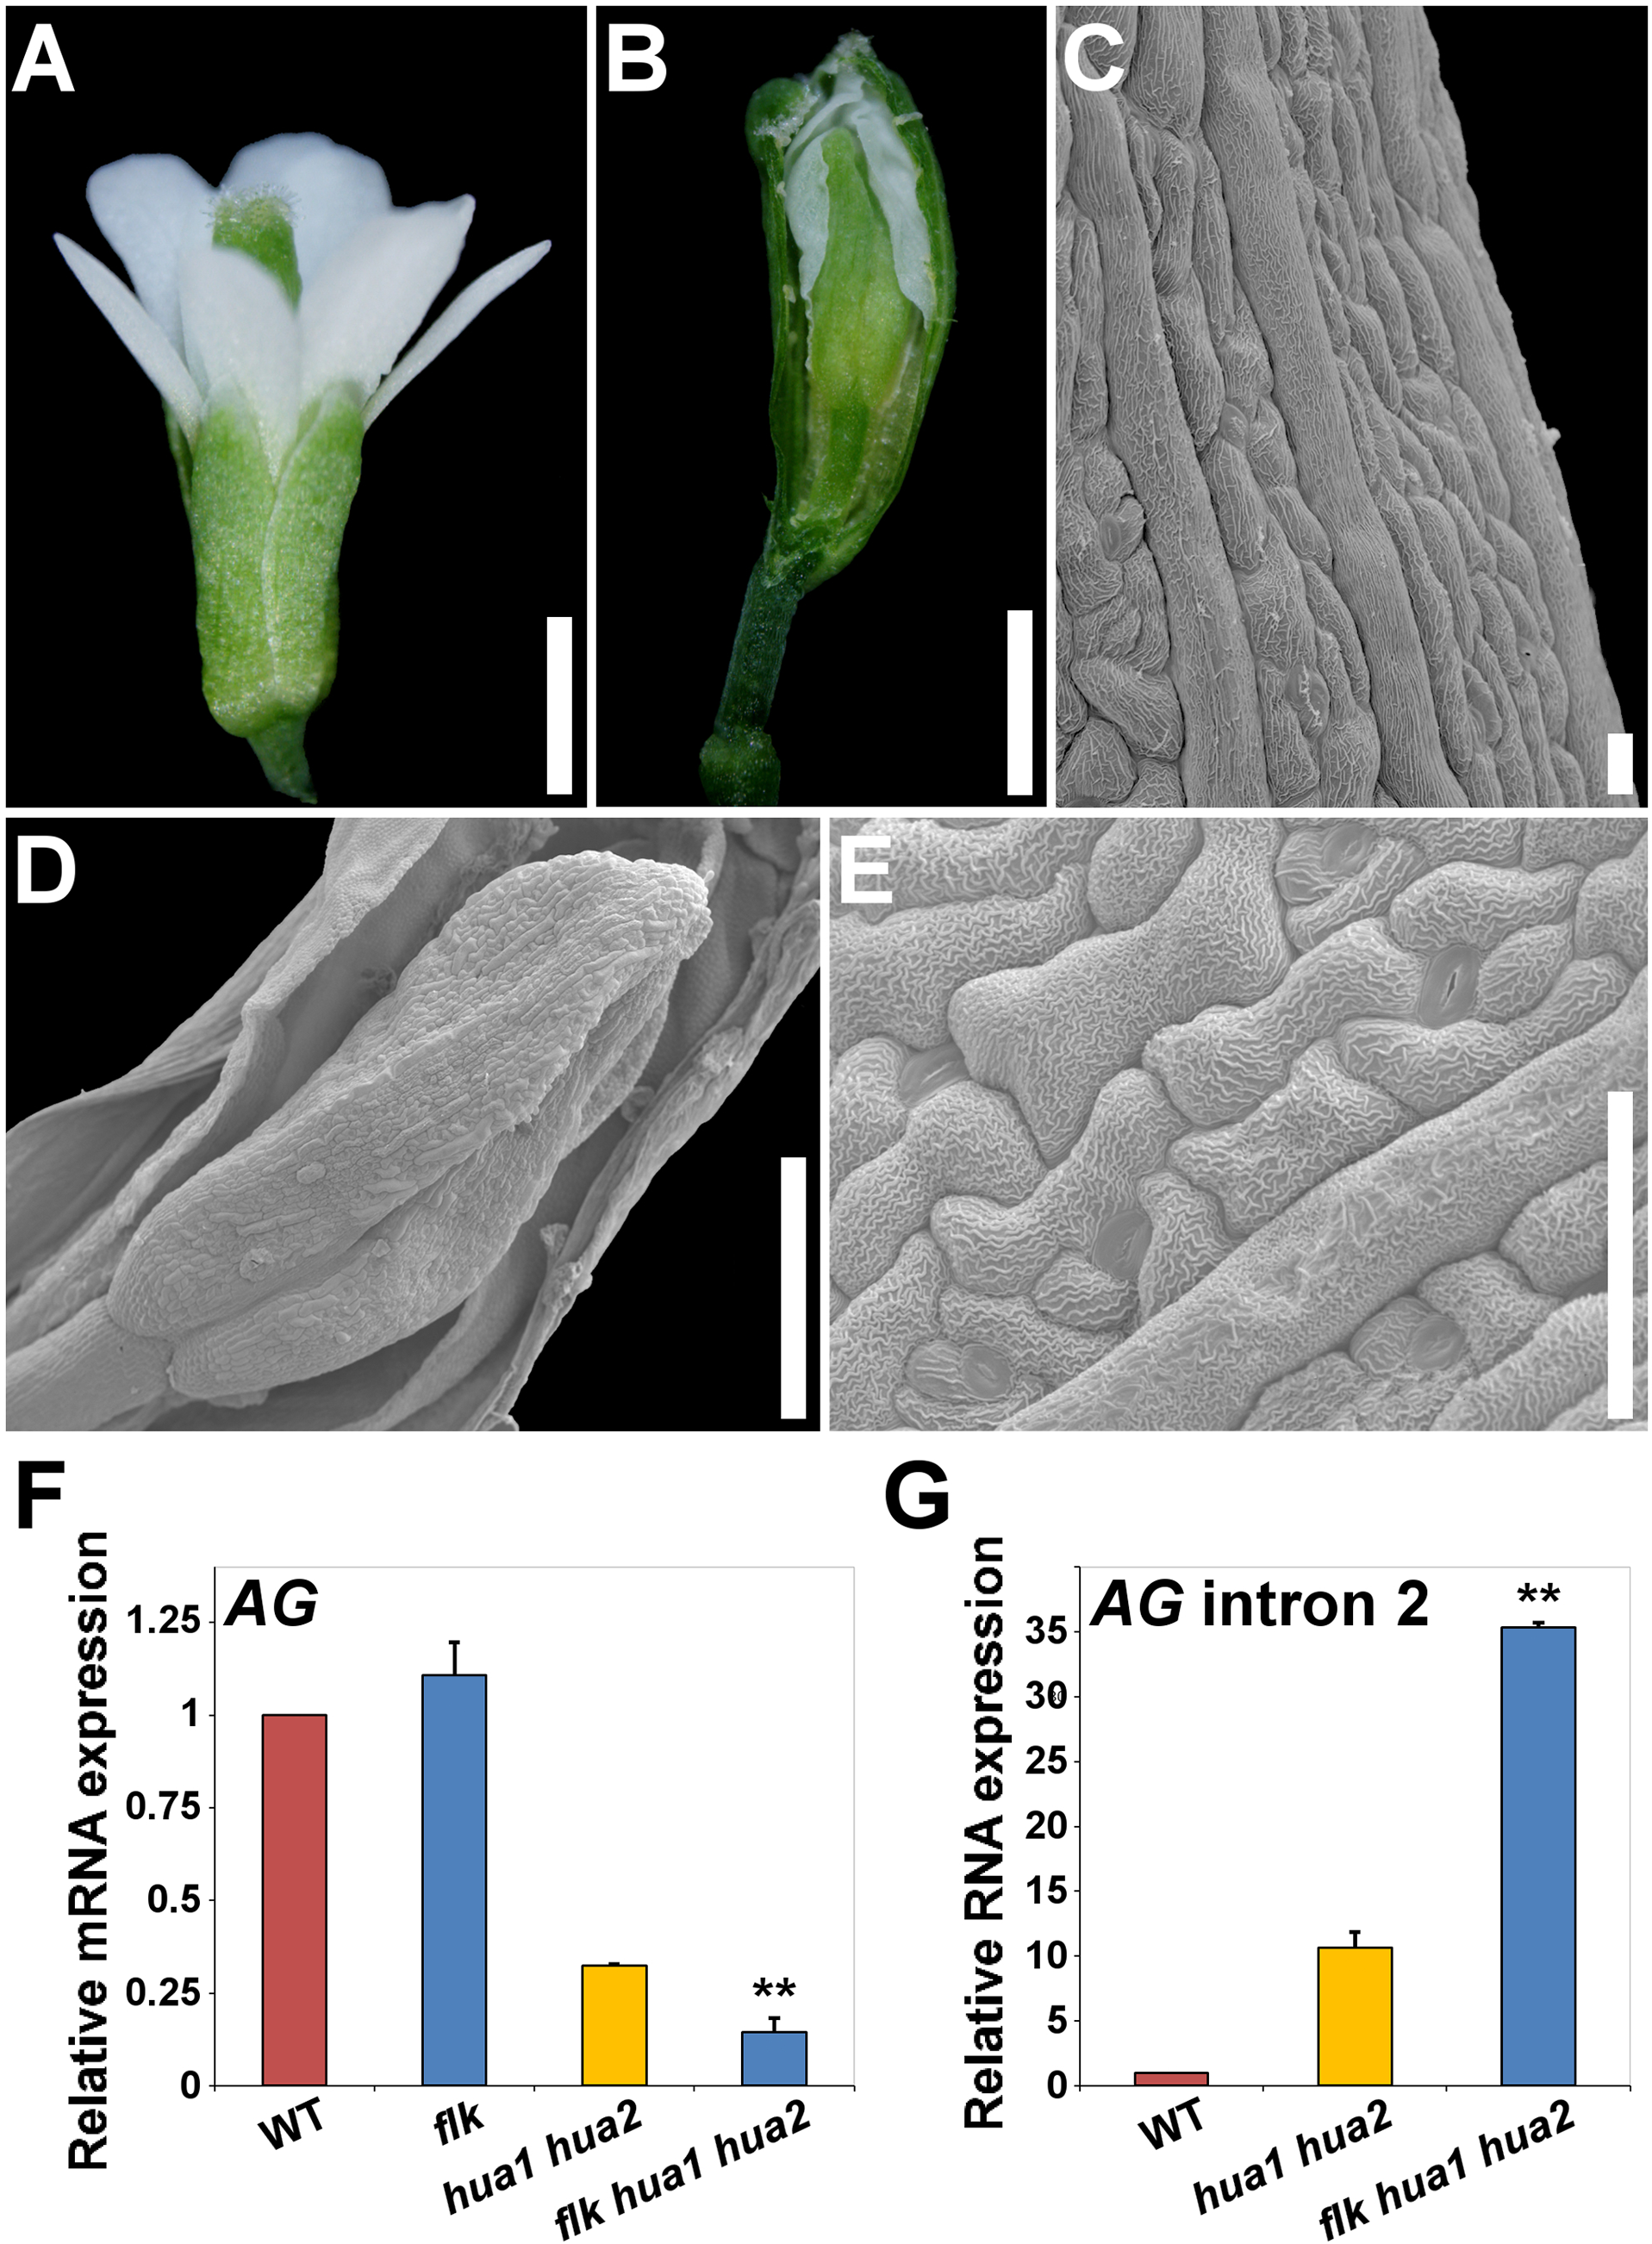 Loss of <i>FLK</i> dramatically enhances the floral phenotypes of <i>hua1 hua2</i> plants.